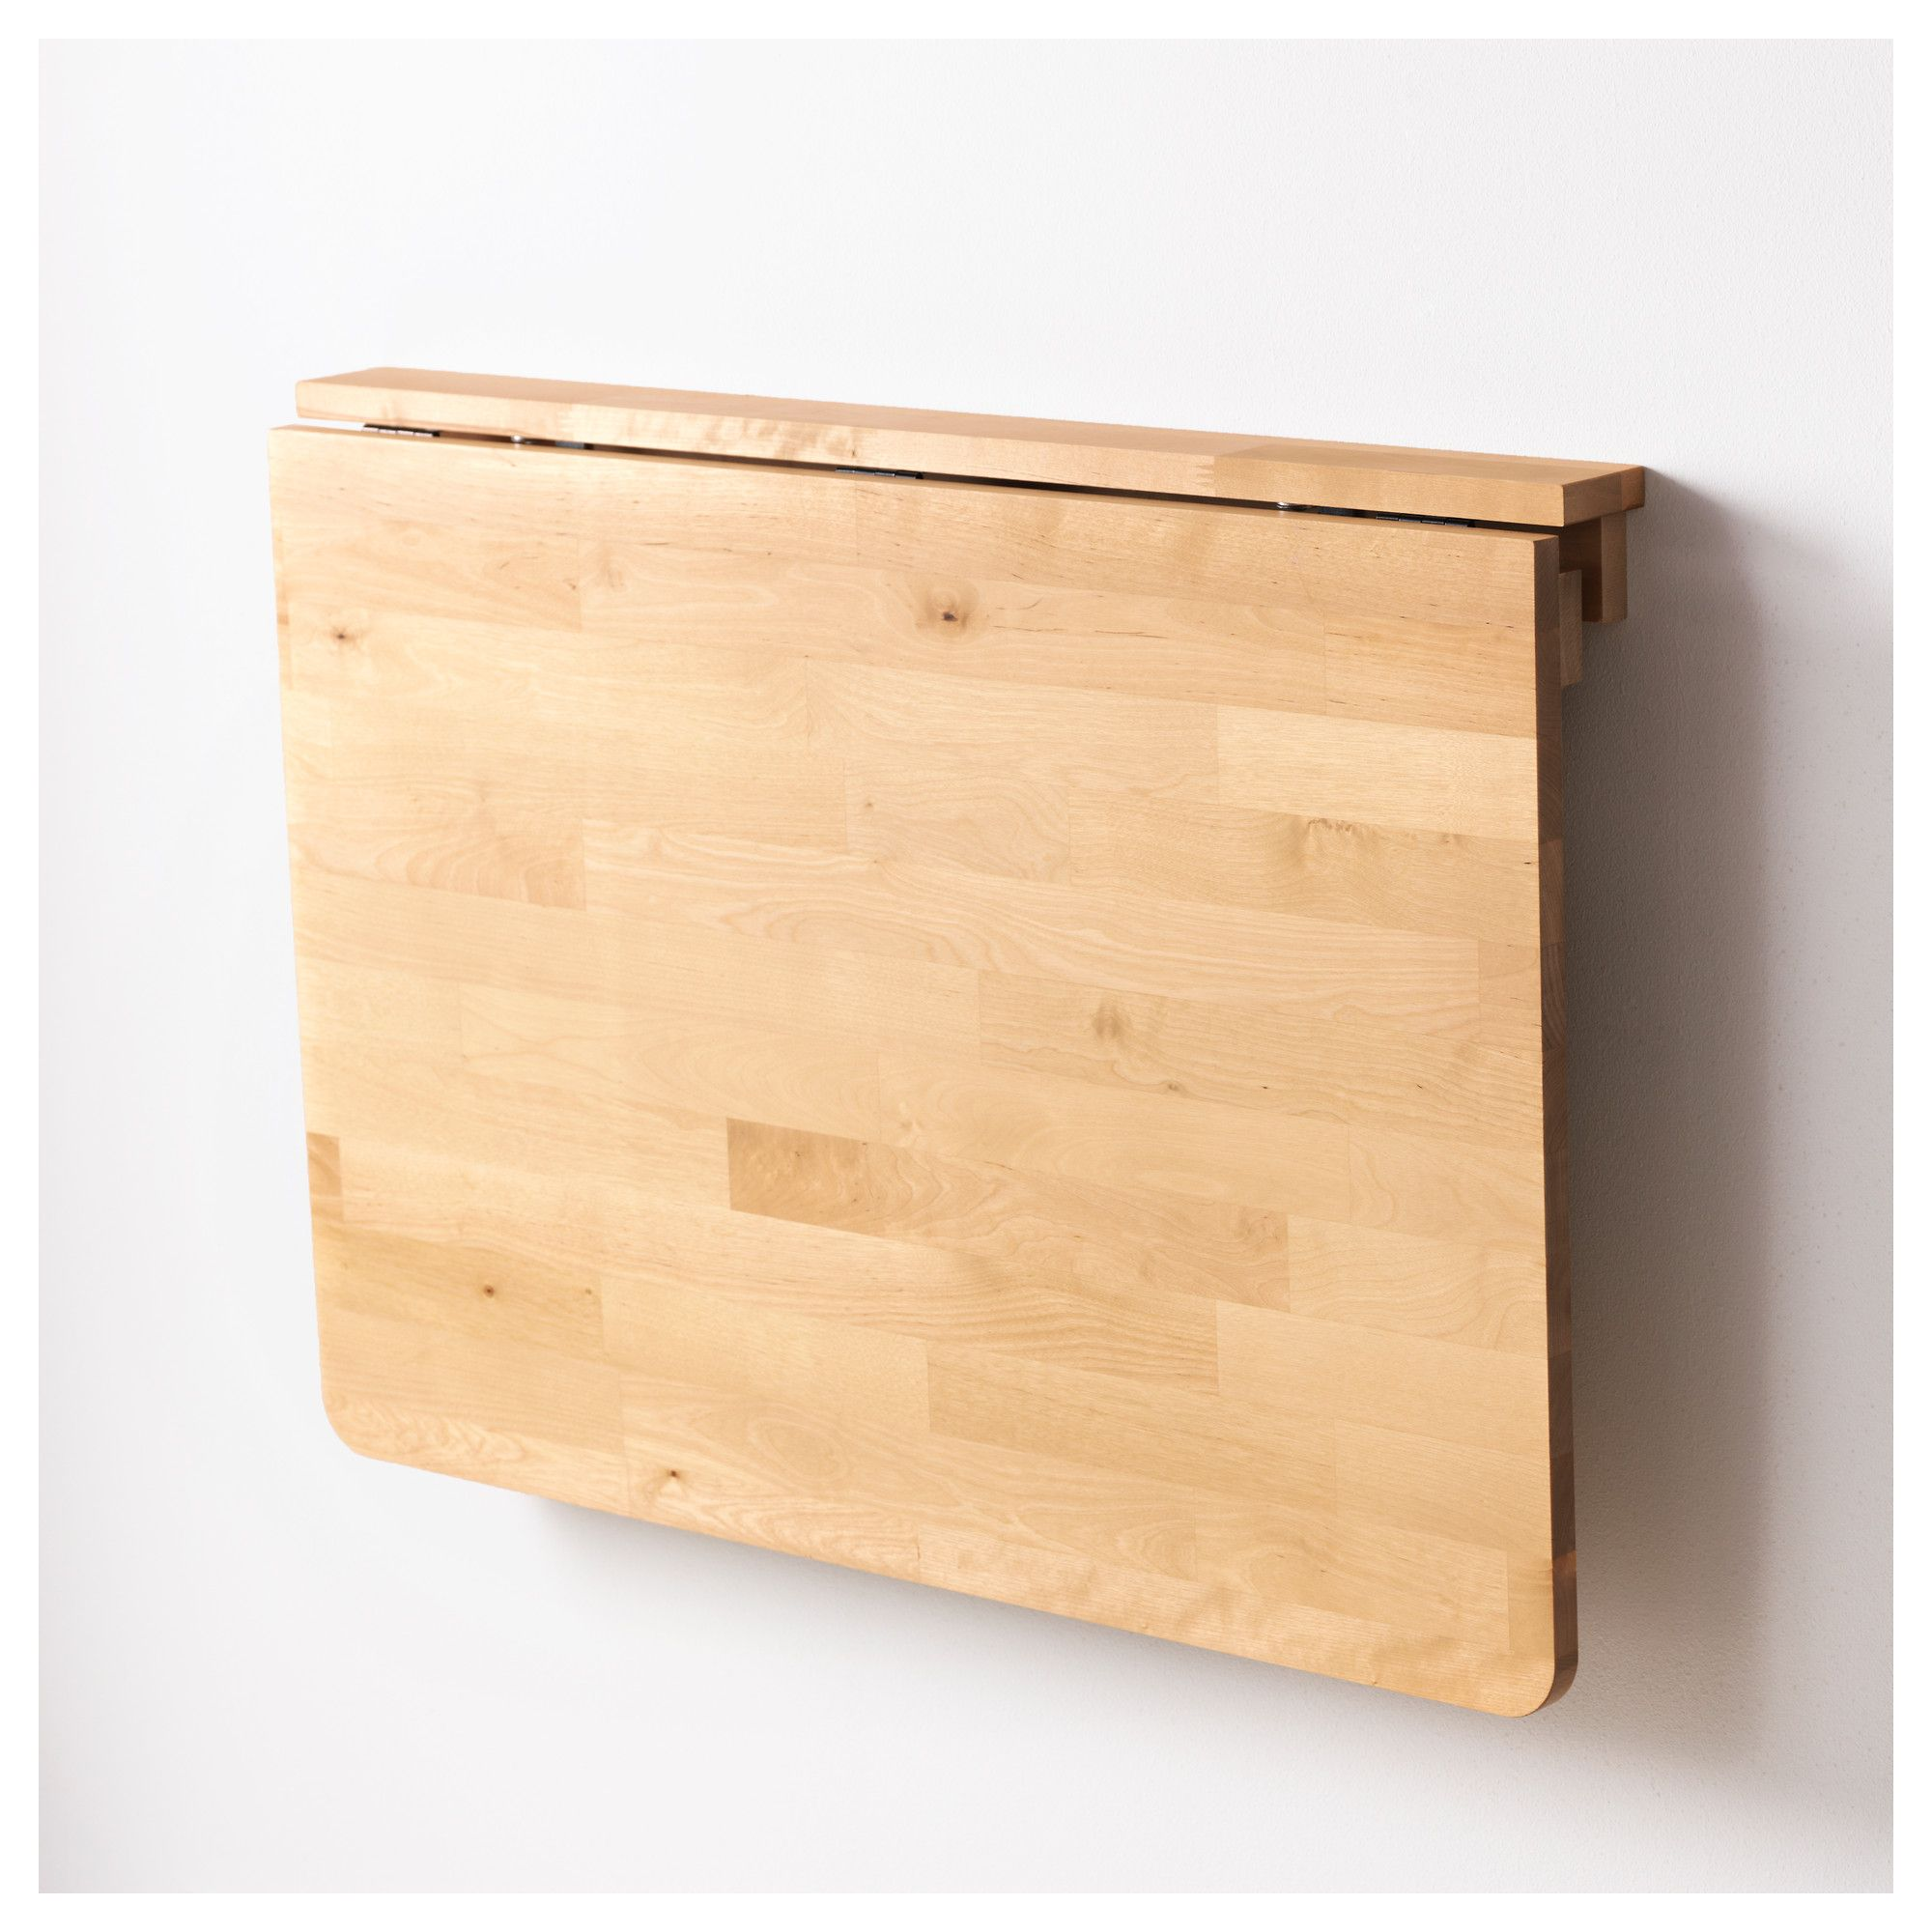 Mesas Plegables De Pared Mesa Plegable Pared Para Comer Insp Office Mesas Plegables